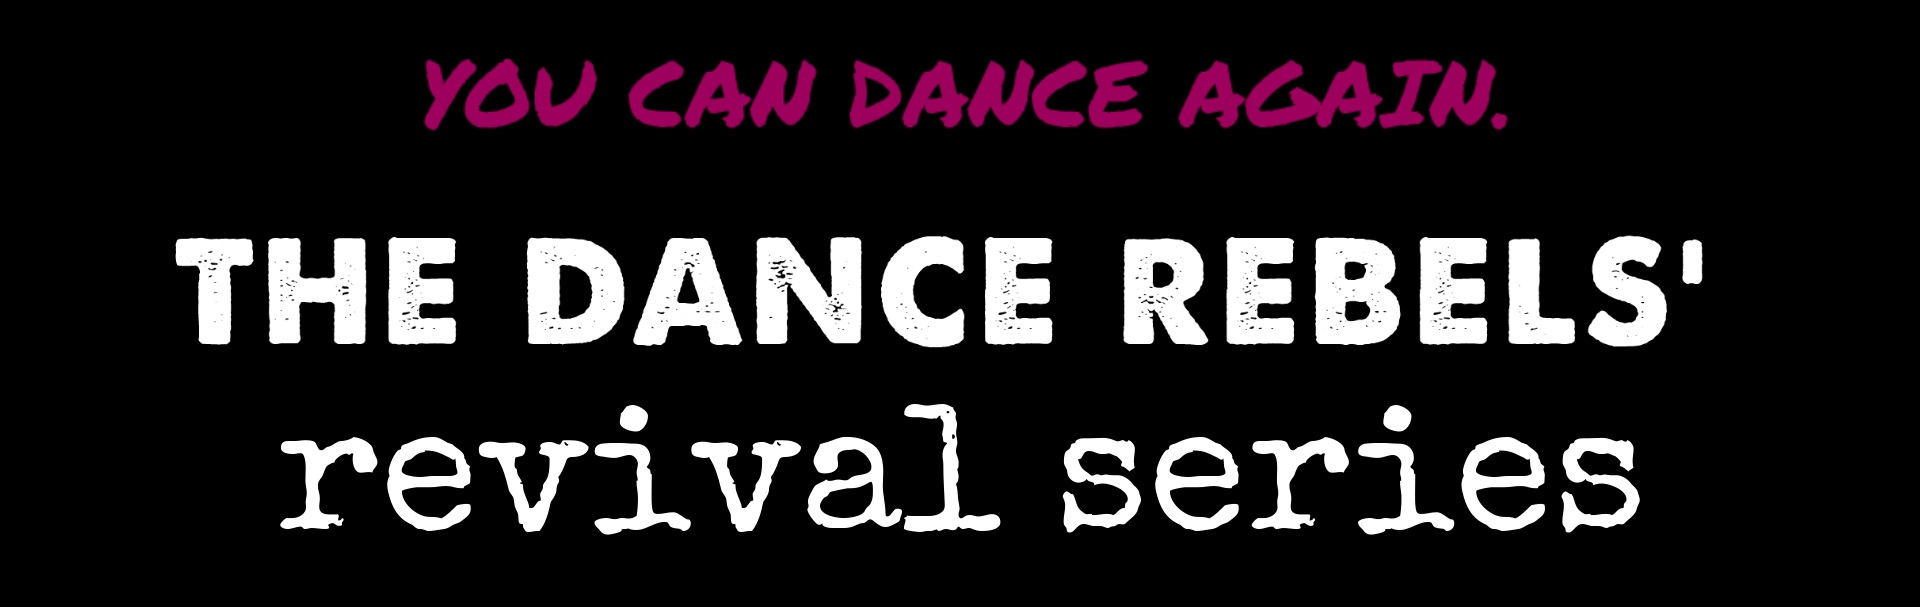 ycda+dance+rebels+revival+series.jpg